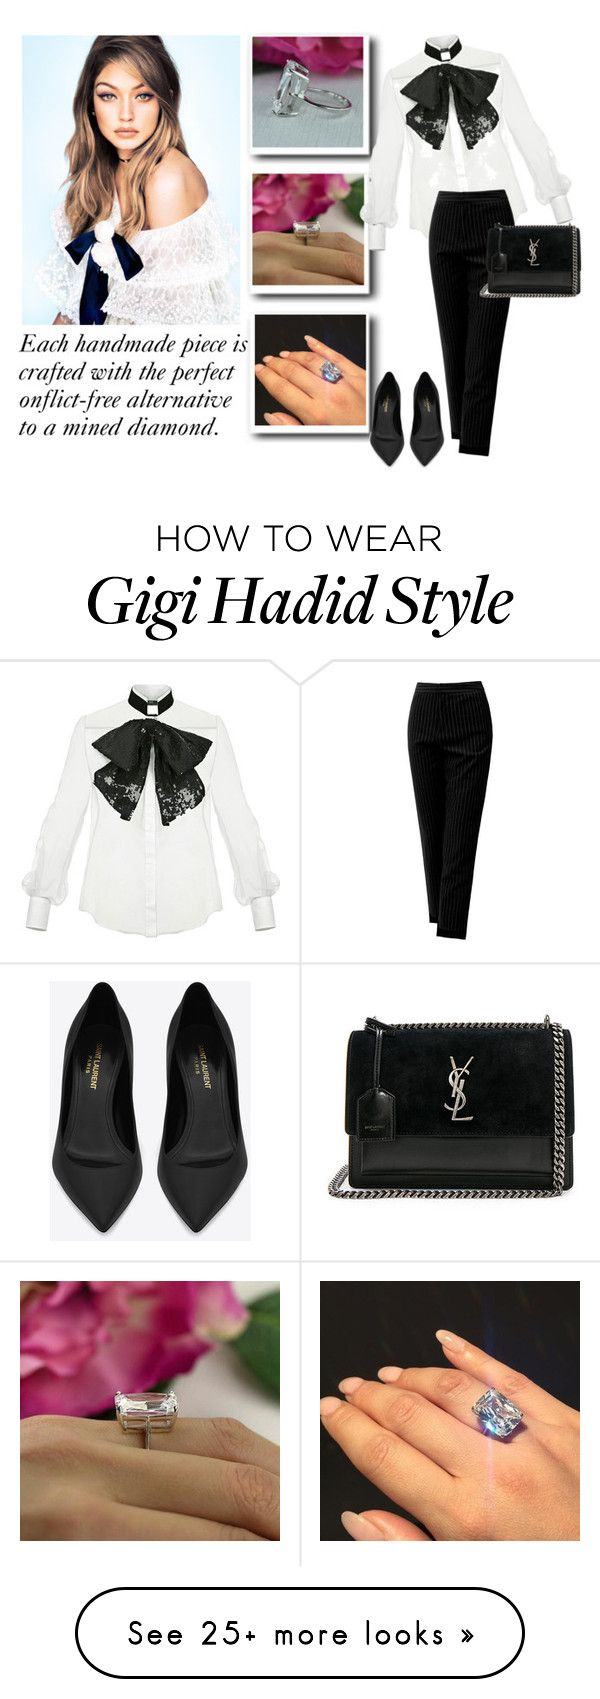 """SHOP - Tiger Gems"" by tiger-gems on Polyvore featuring Elisabetta Franchi, Sans Souci and Yves Saint Laurent"